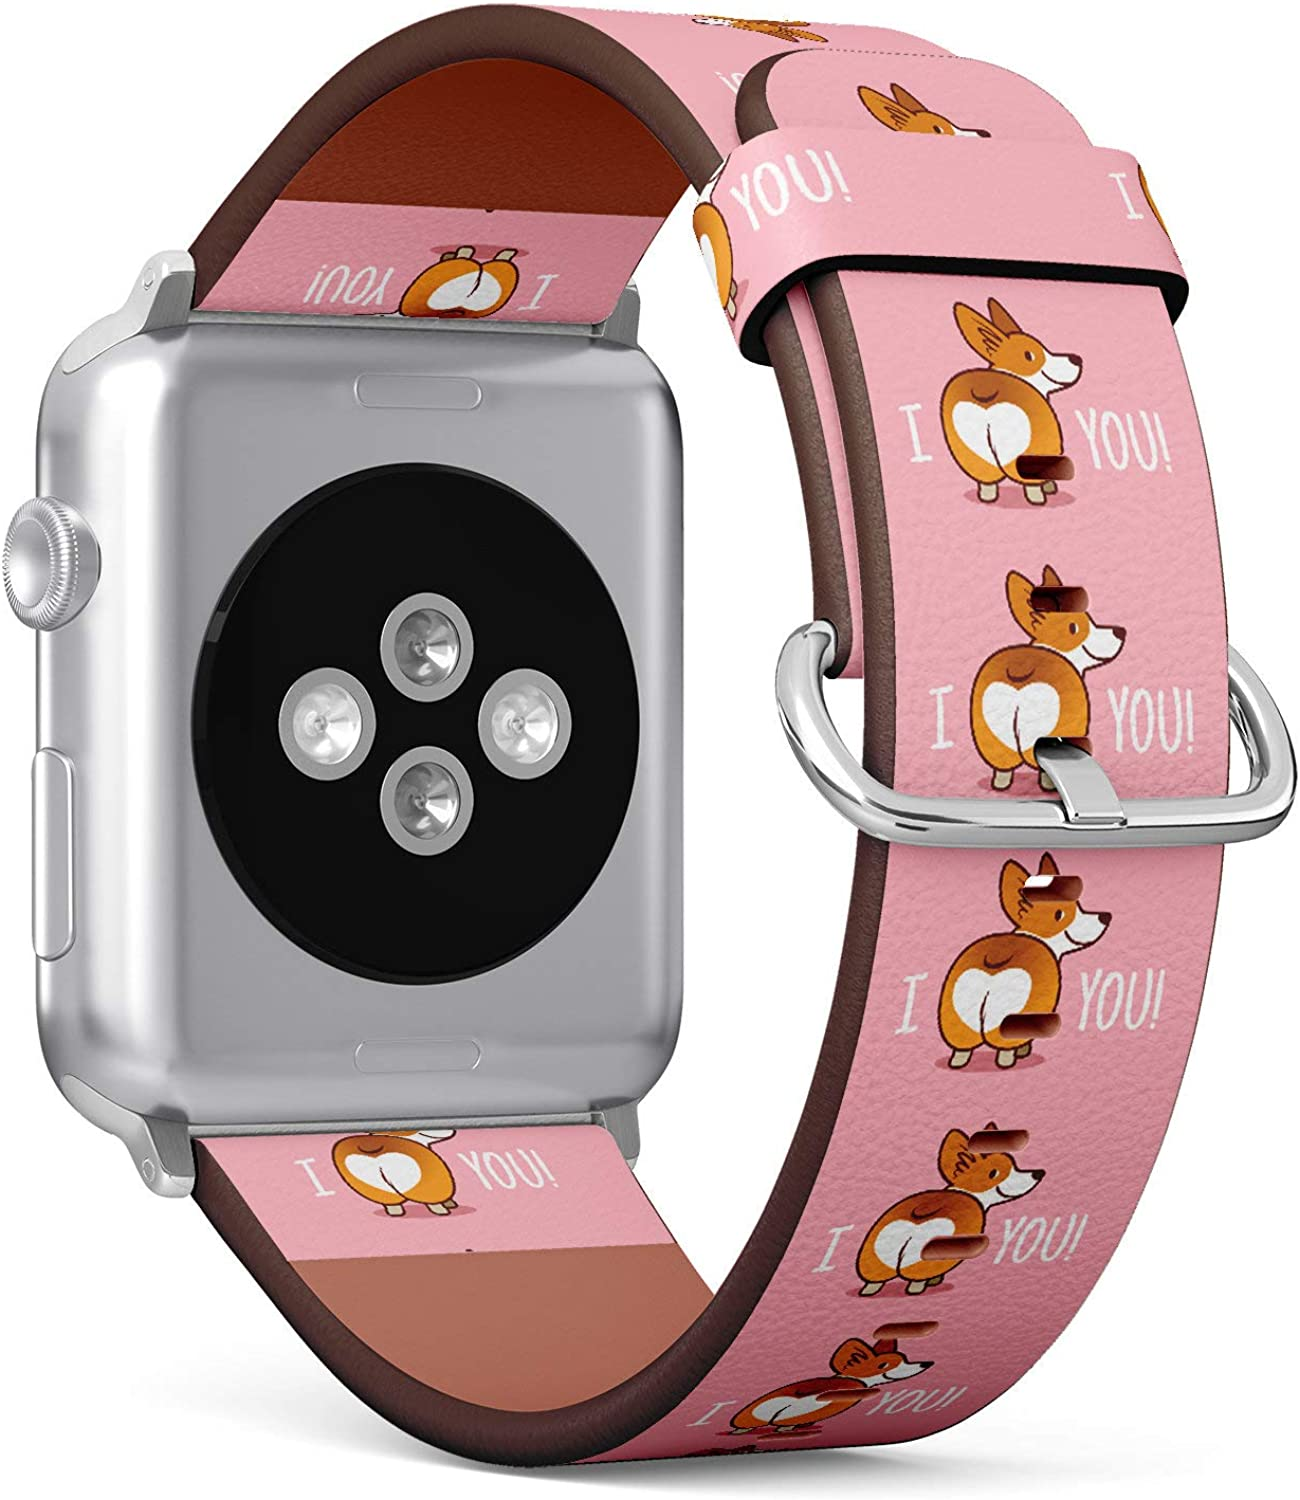 (Funny Corgi I Butt You) Patterned Leather Wristband Strap for Apple Watch Series 4/3/2/1 gen,Replacement for iWatch 38mm / 40mm Bands